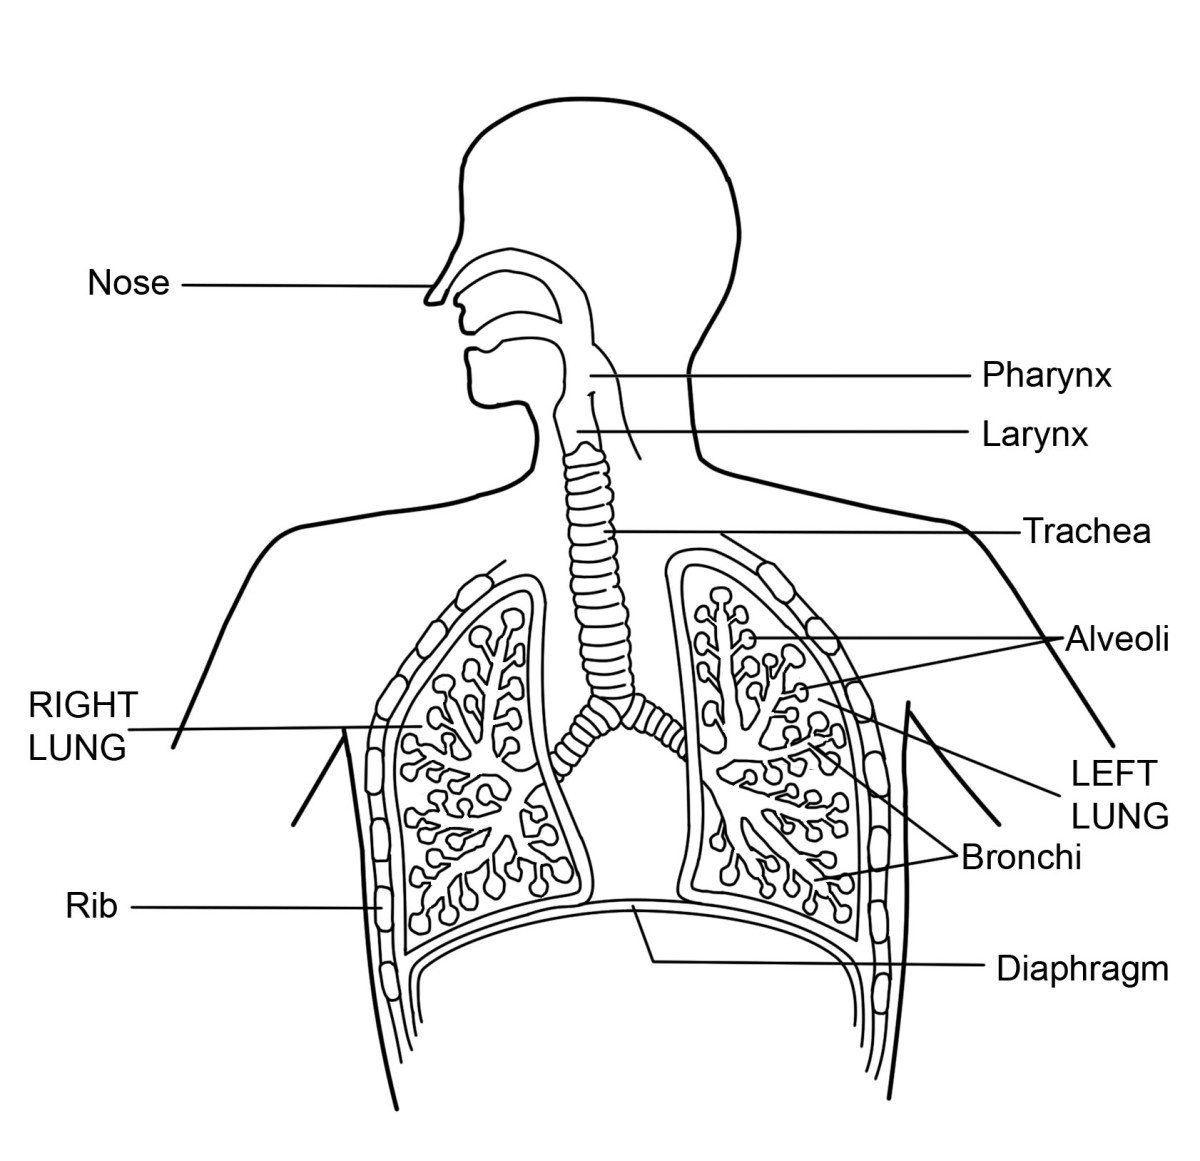 Labeled Diagram Of The Respiratory System